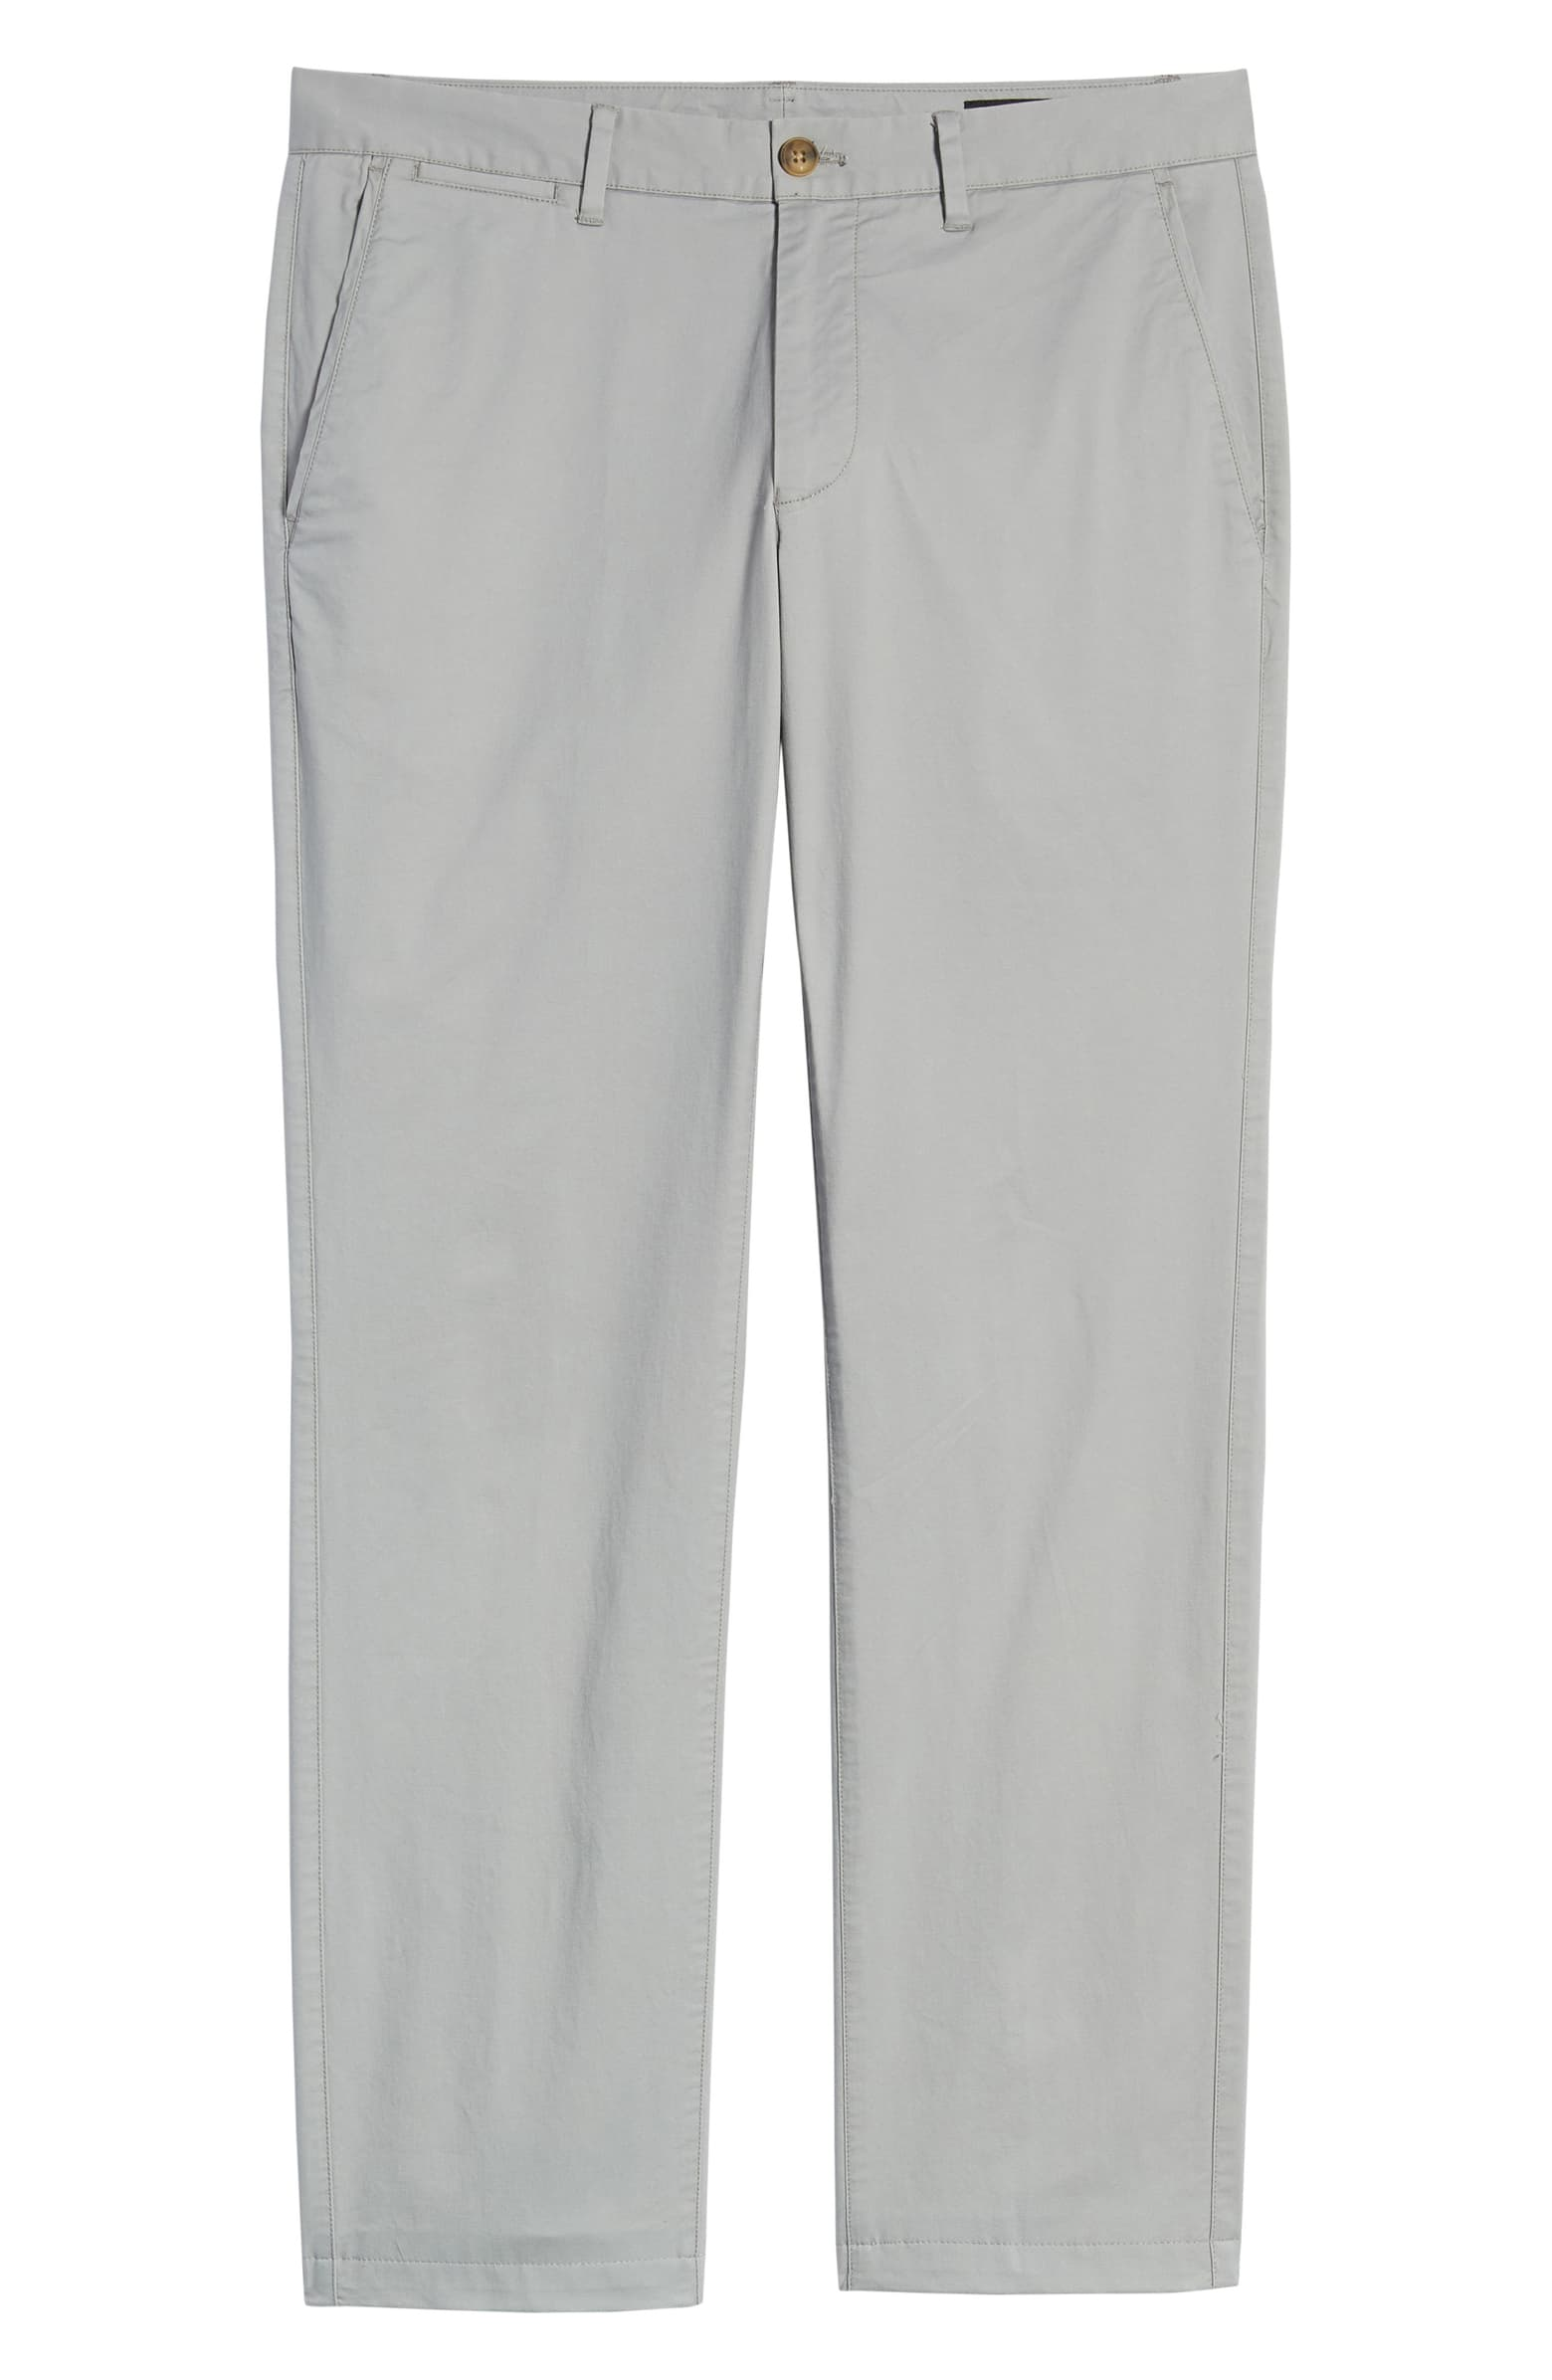 bonobos summer weight slim fit strech chinos in cityscape.jpeg